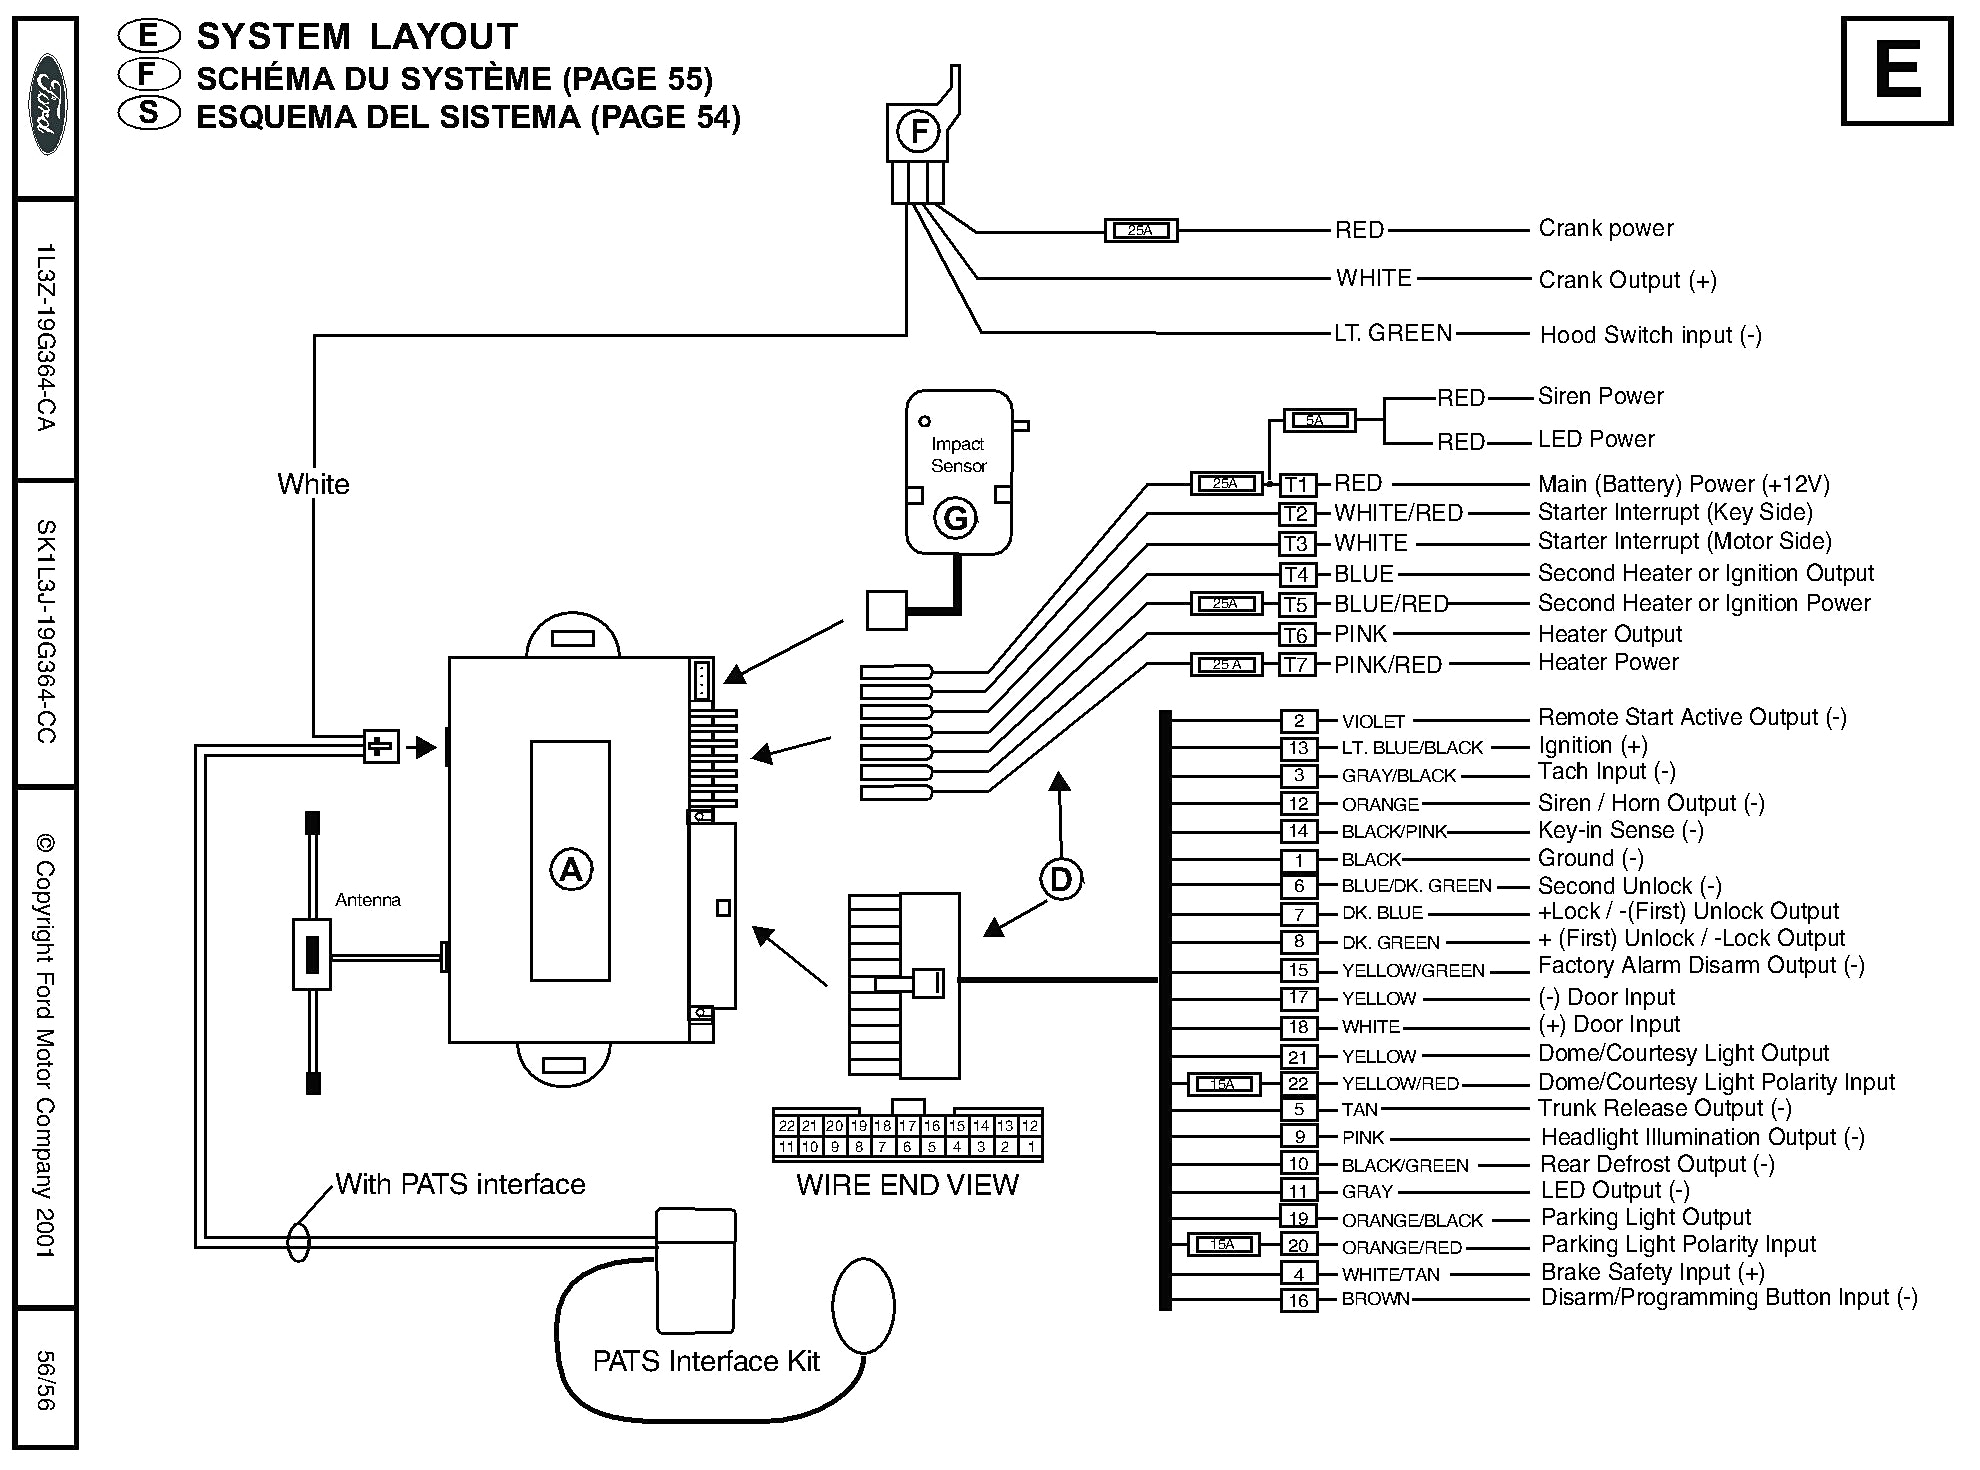 Ready Remote Wiring Diagram Ready Remote Wiring Diagram Today Diagram Database